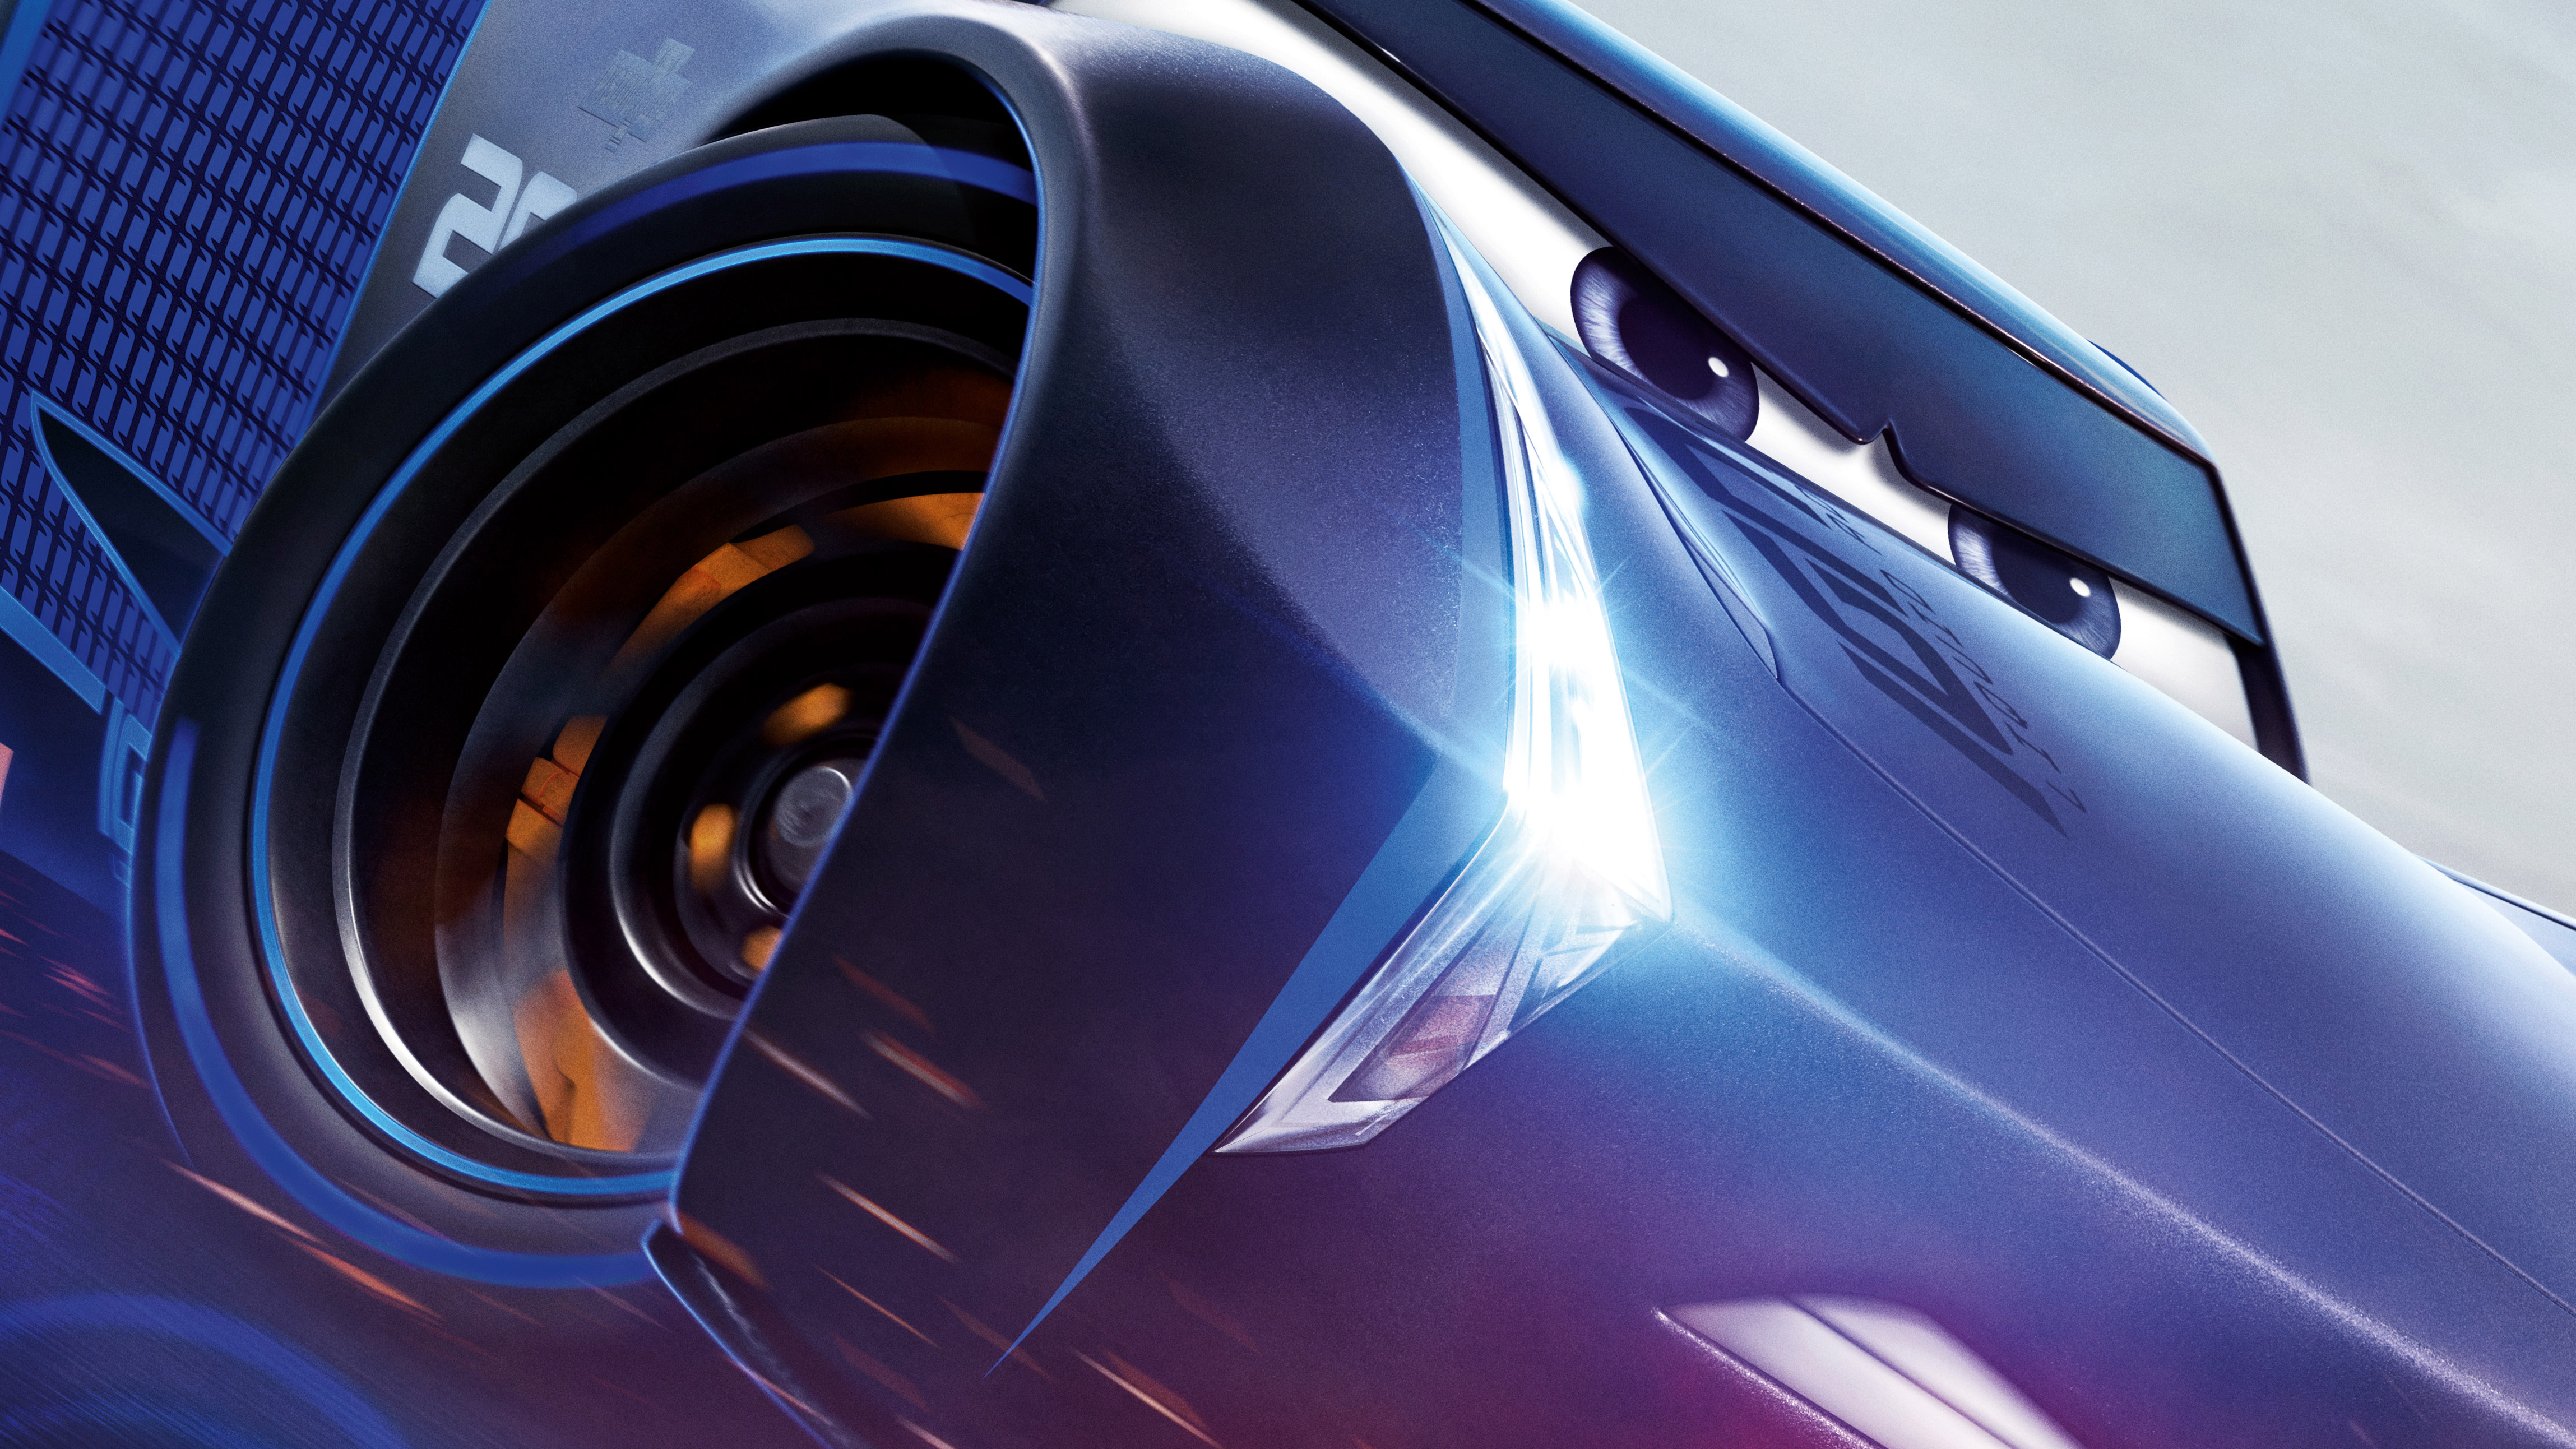 Jackson storm cars 3 4k hd movies 4k wallpapers images - Cars 3 wallpaper ...